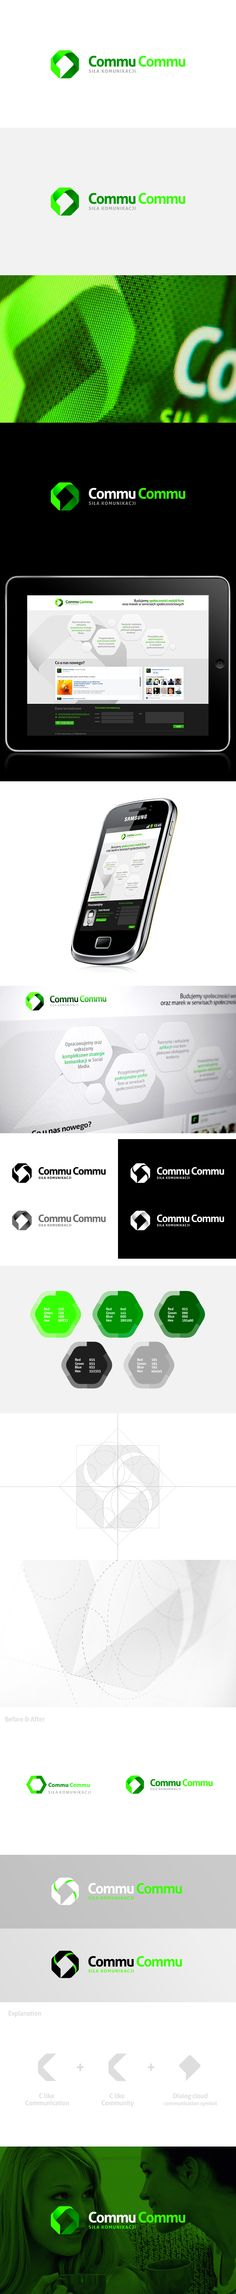 CommuCommu by Kamil Doliwa, via Behance